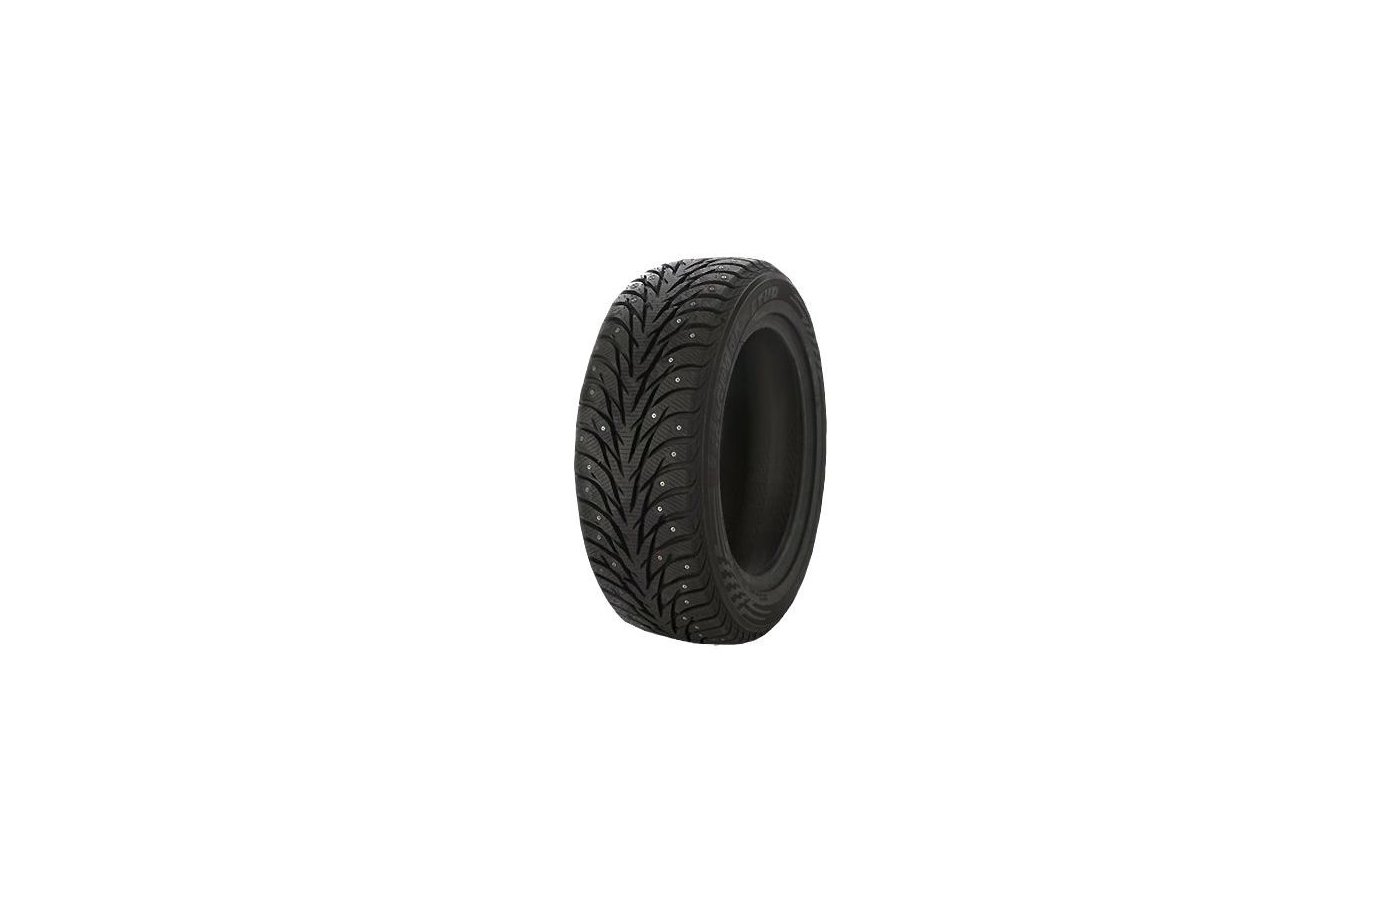 Шина Yokohama Ice Guard IG35 Plus 225/55 R18 TL 98T шип